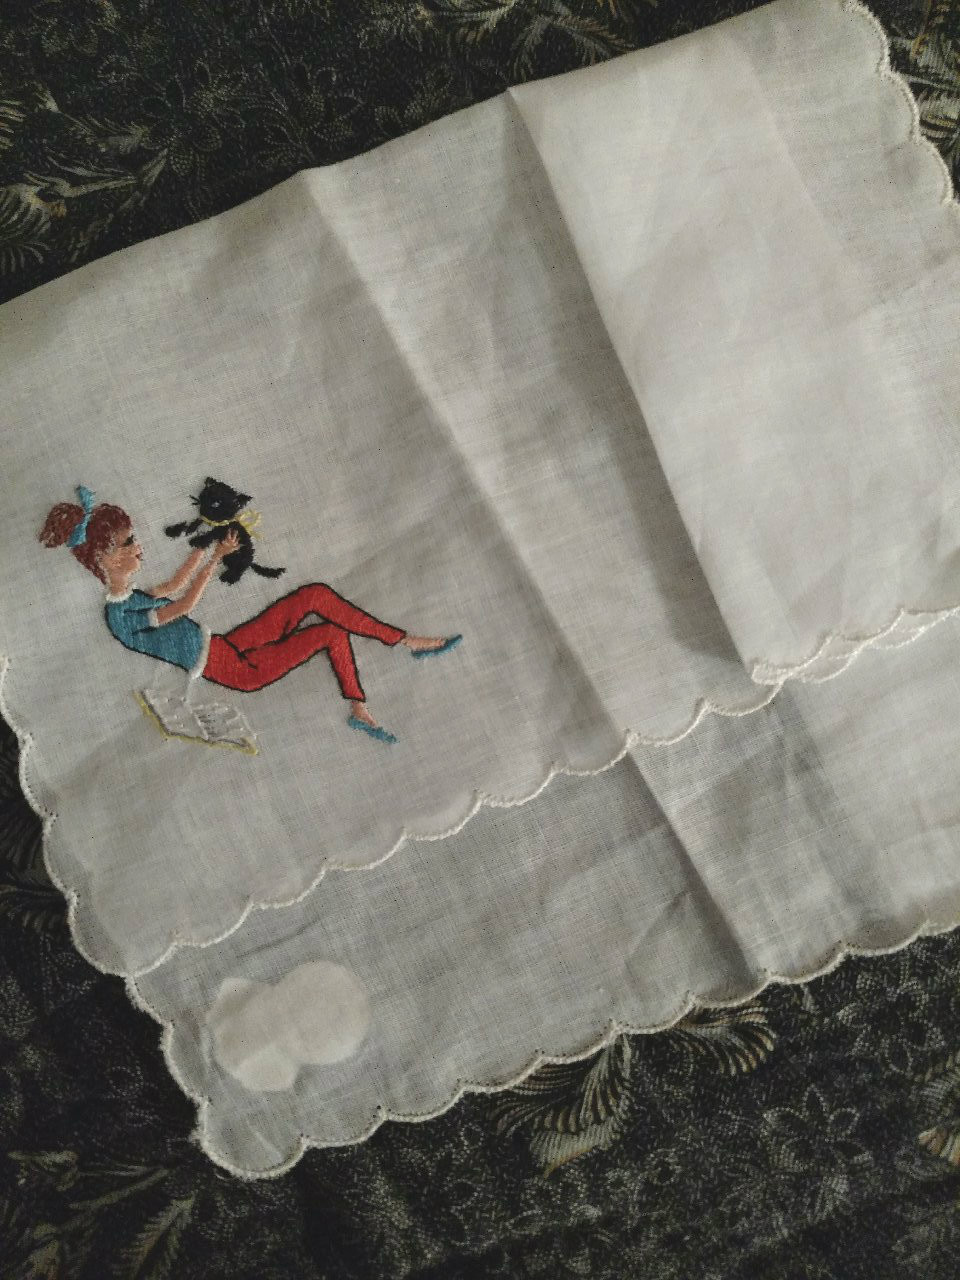 1950s Desco Hankie Handkerchief Ponytail Girl Cat Embroidery Unused